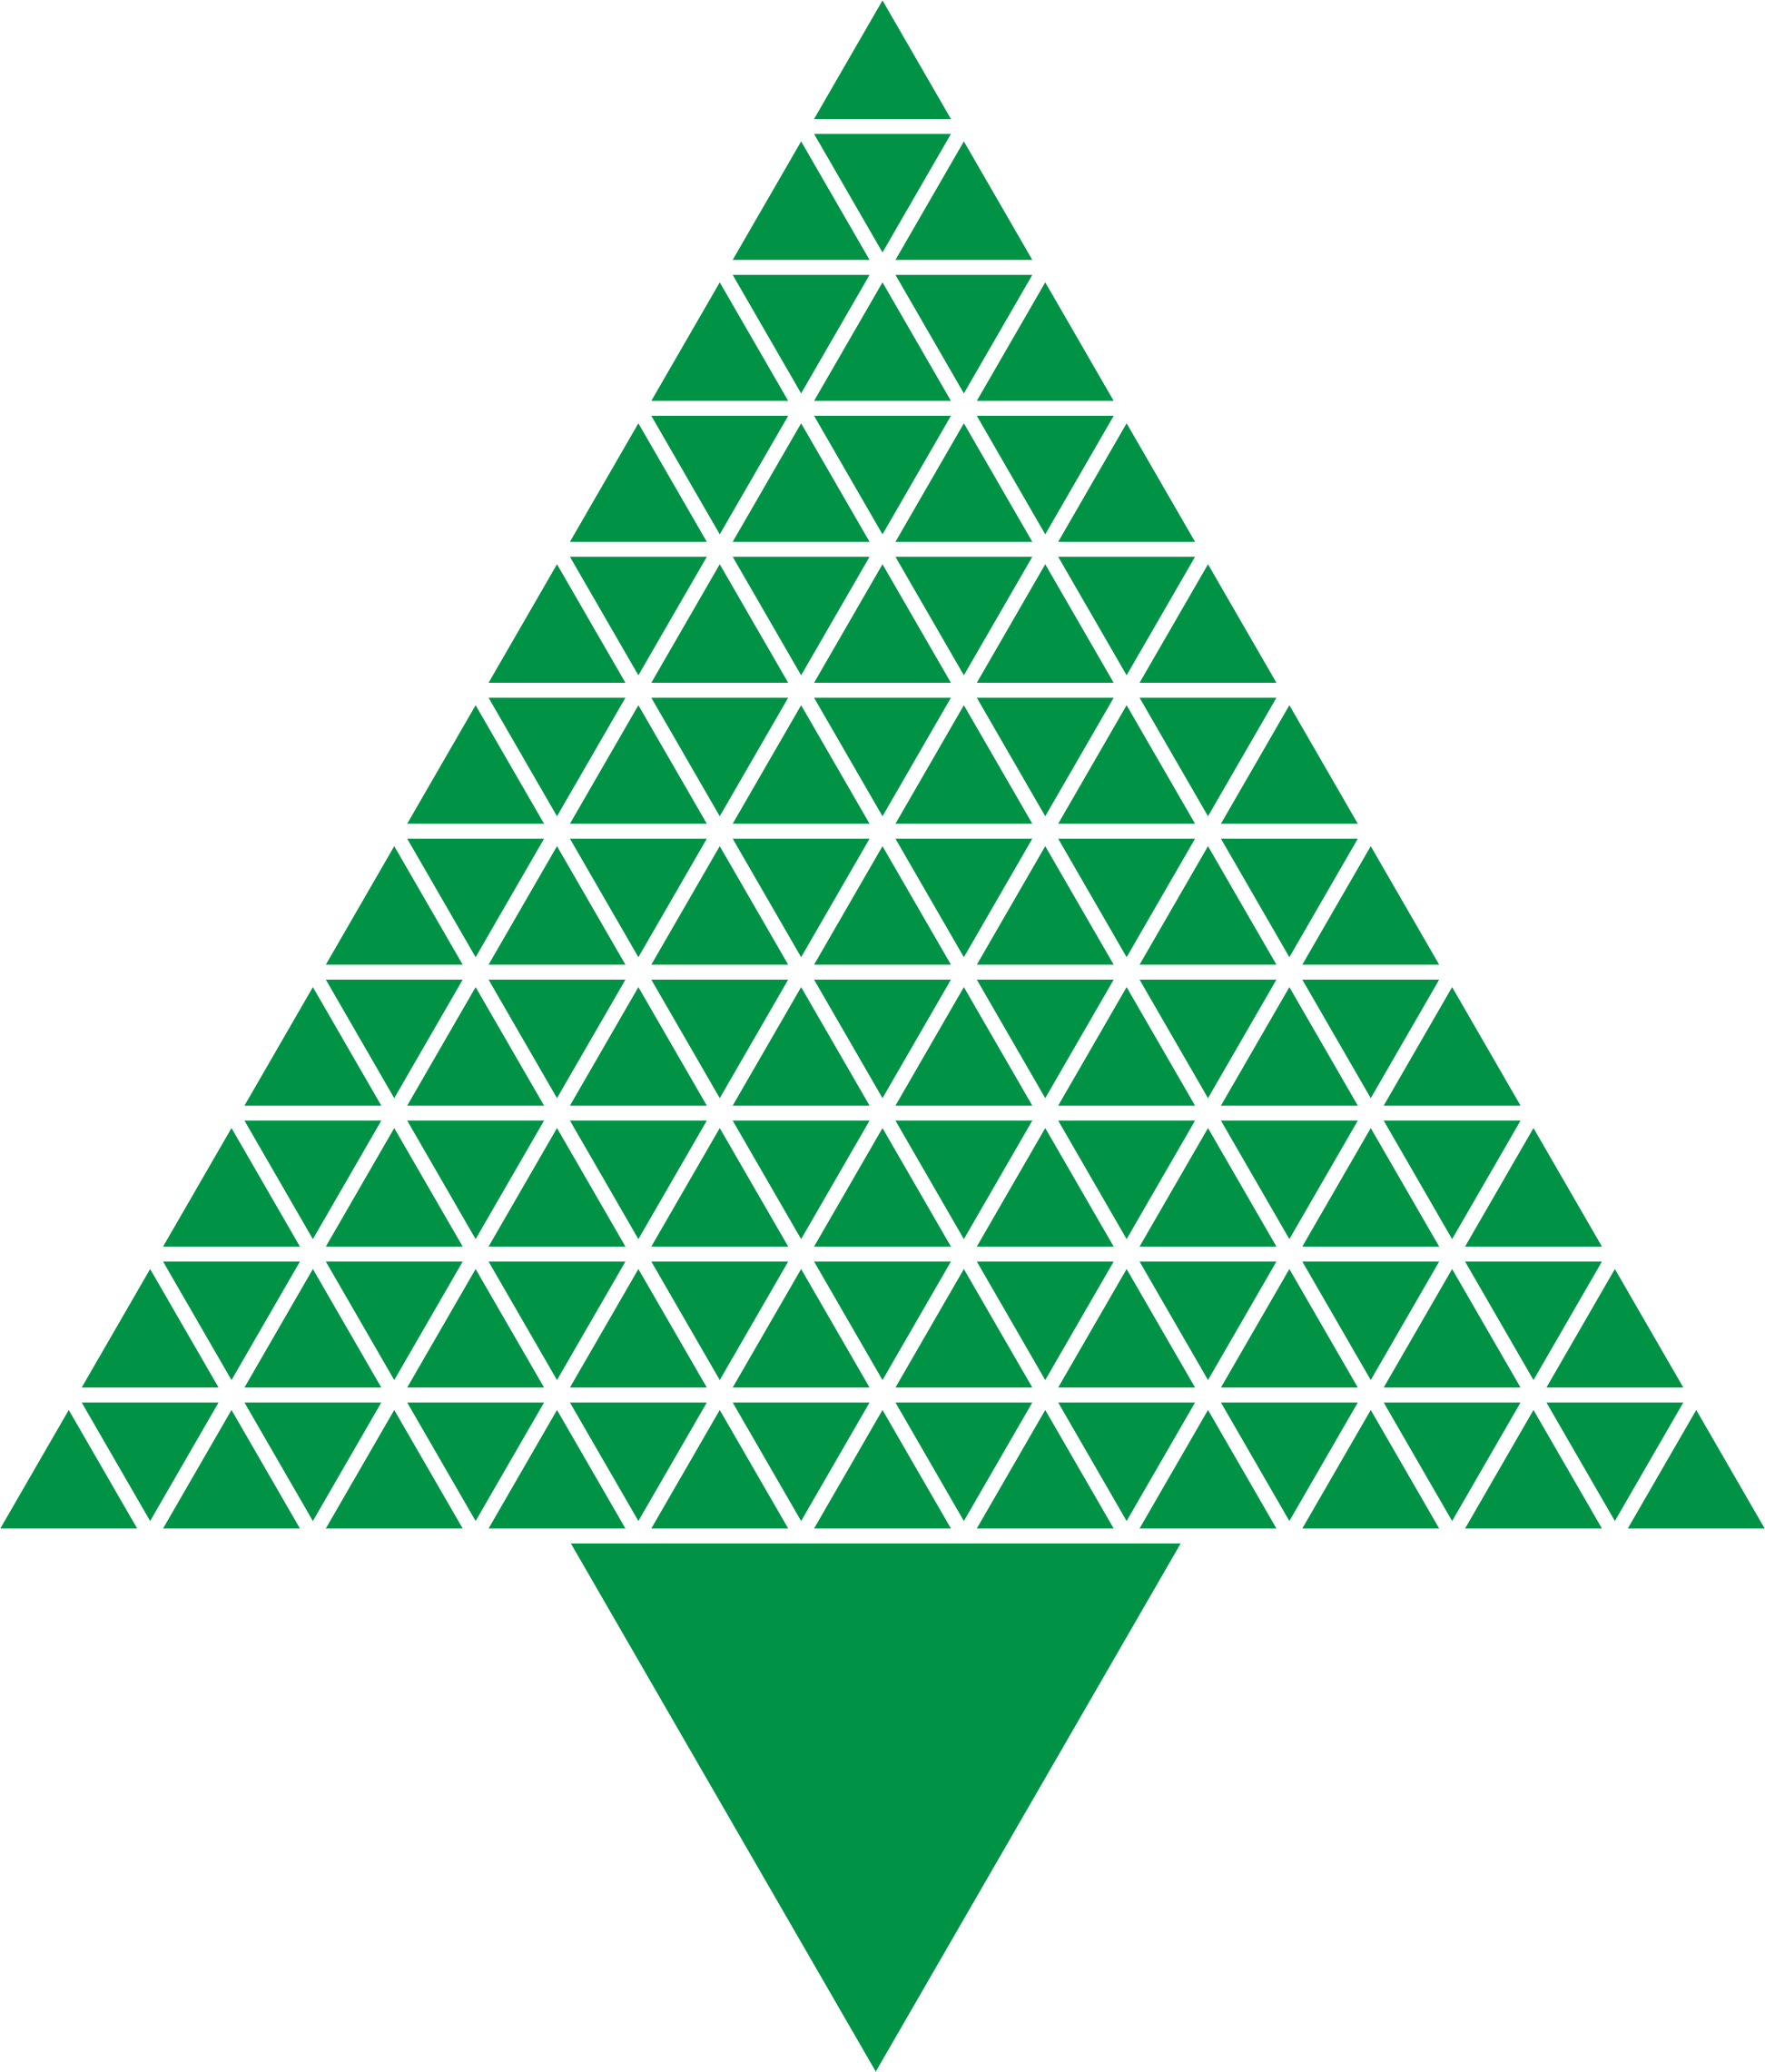 Abstract Triangular Christmas Tree Green by GDJ